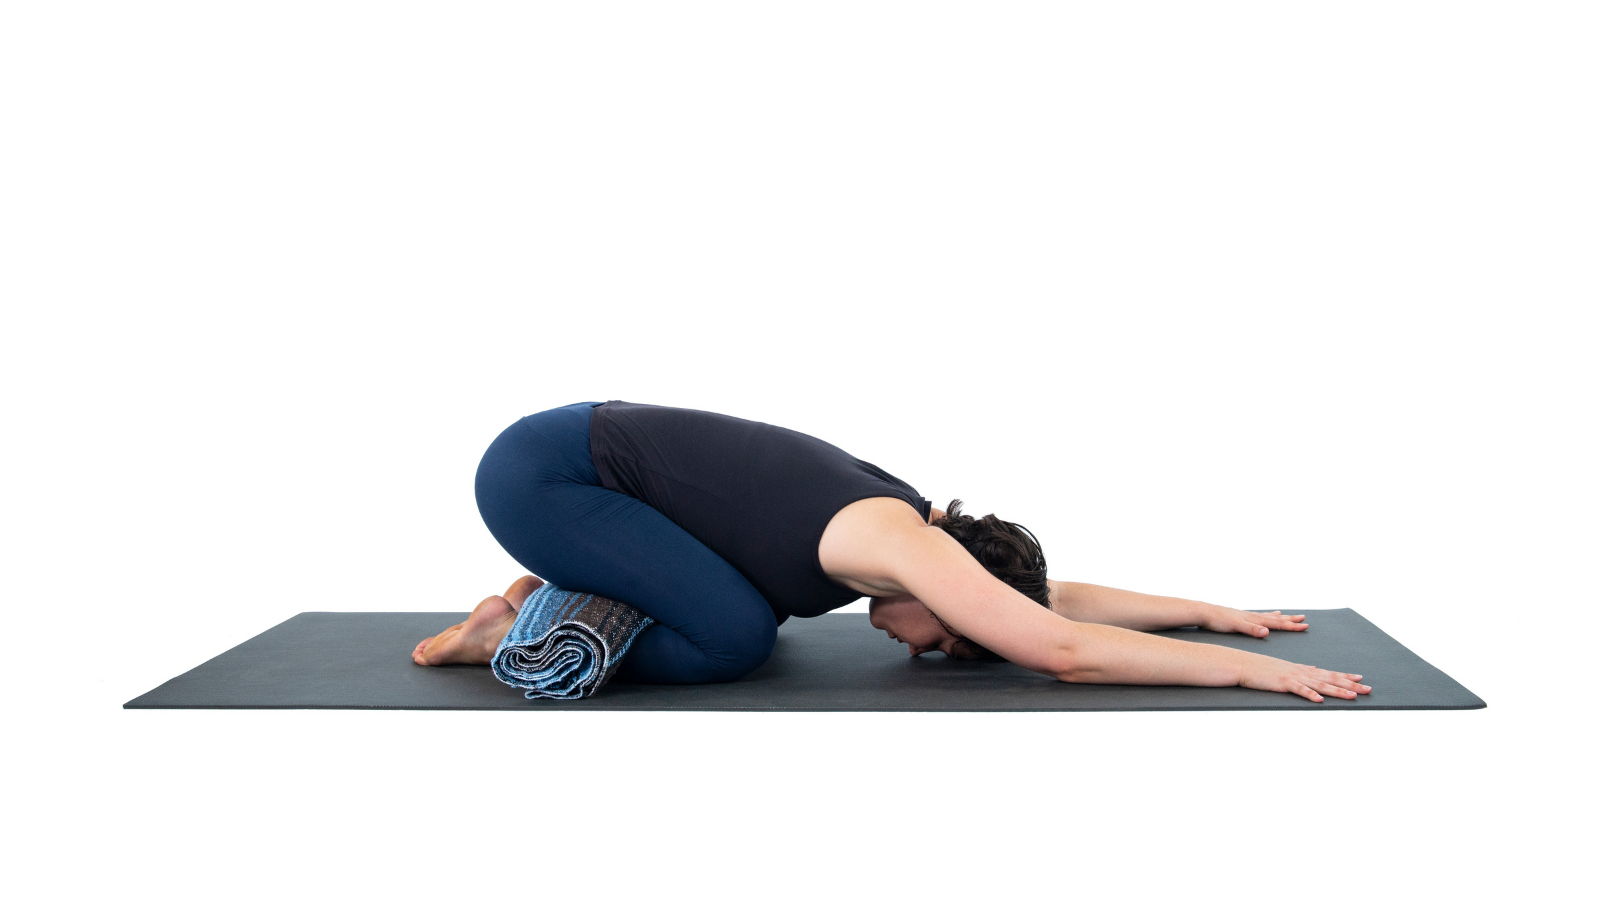 Practicing a variation of Child's Pose or Balasana to make it comfortably your own version